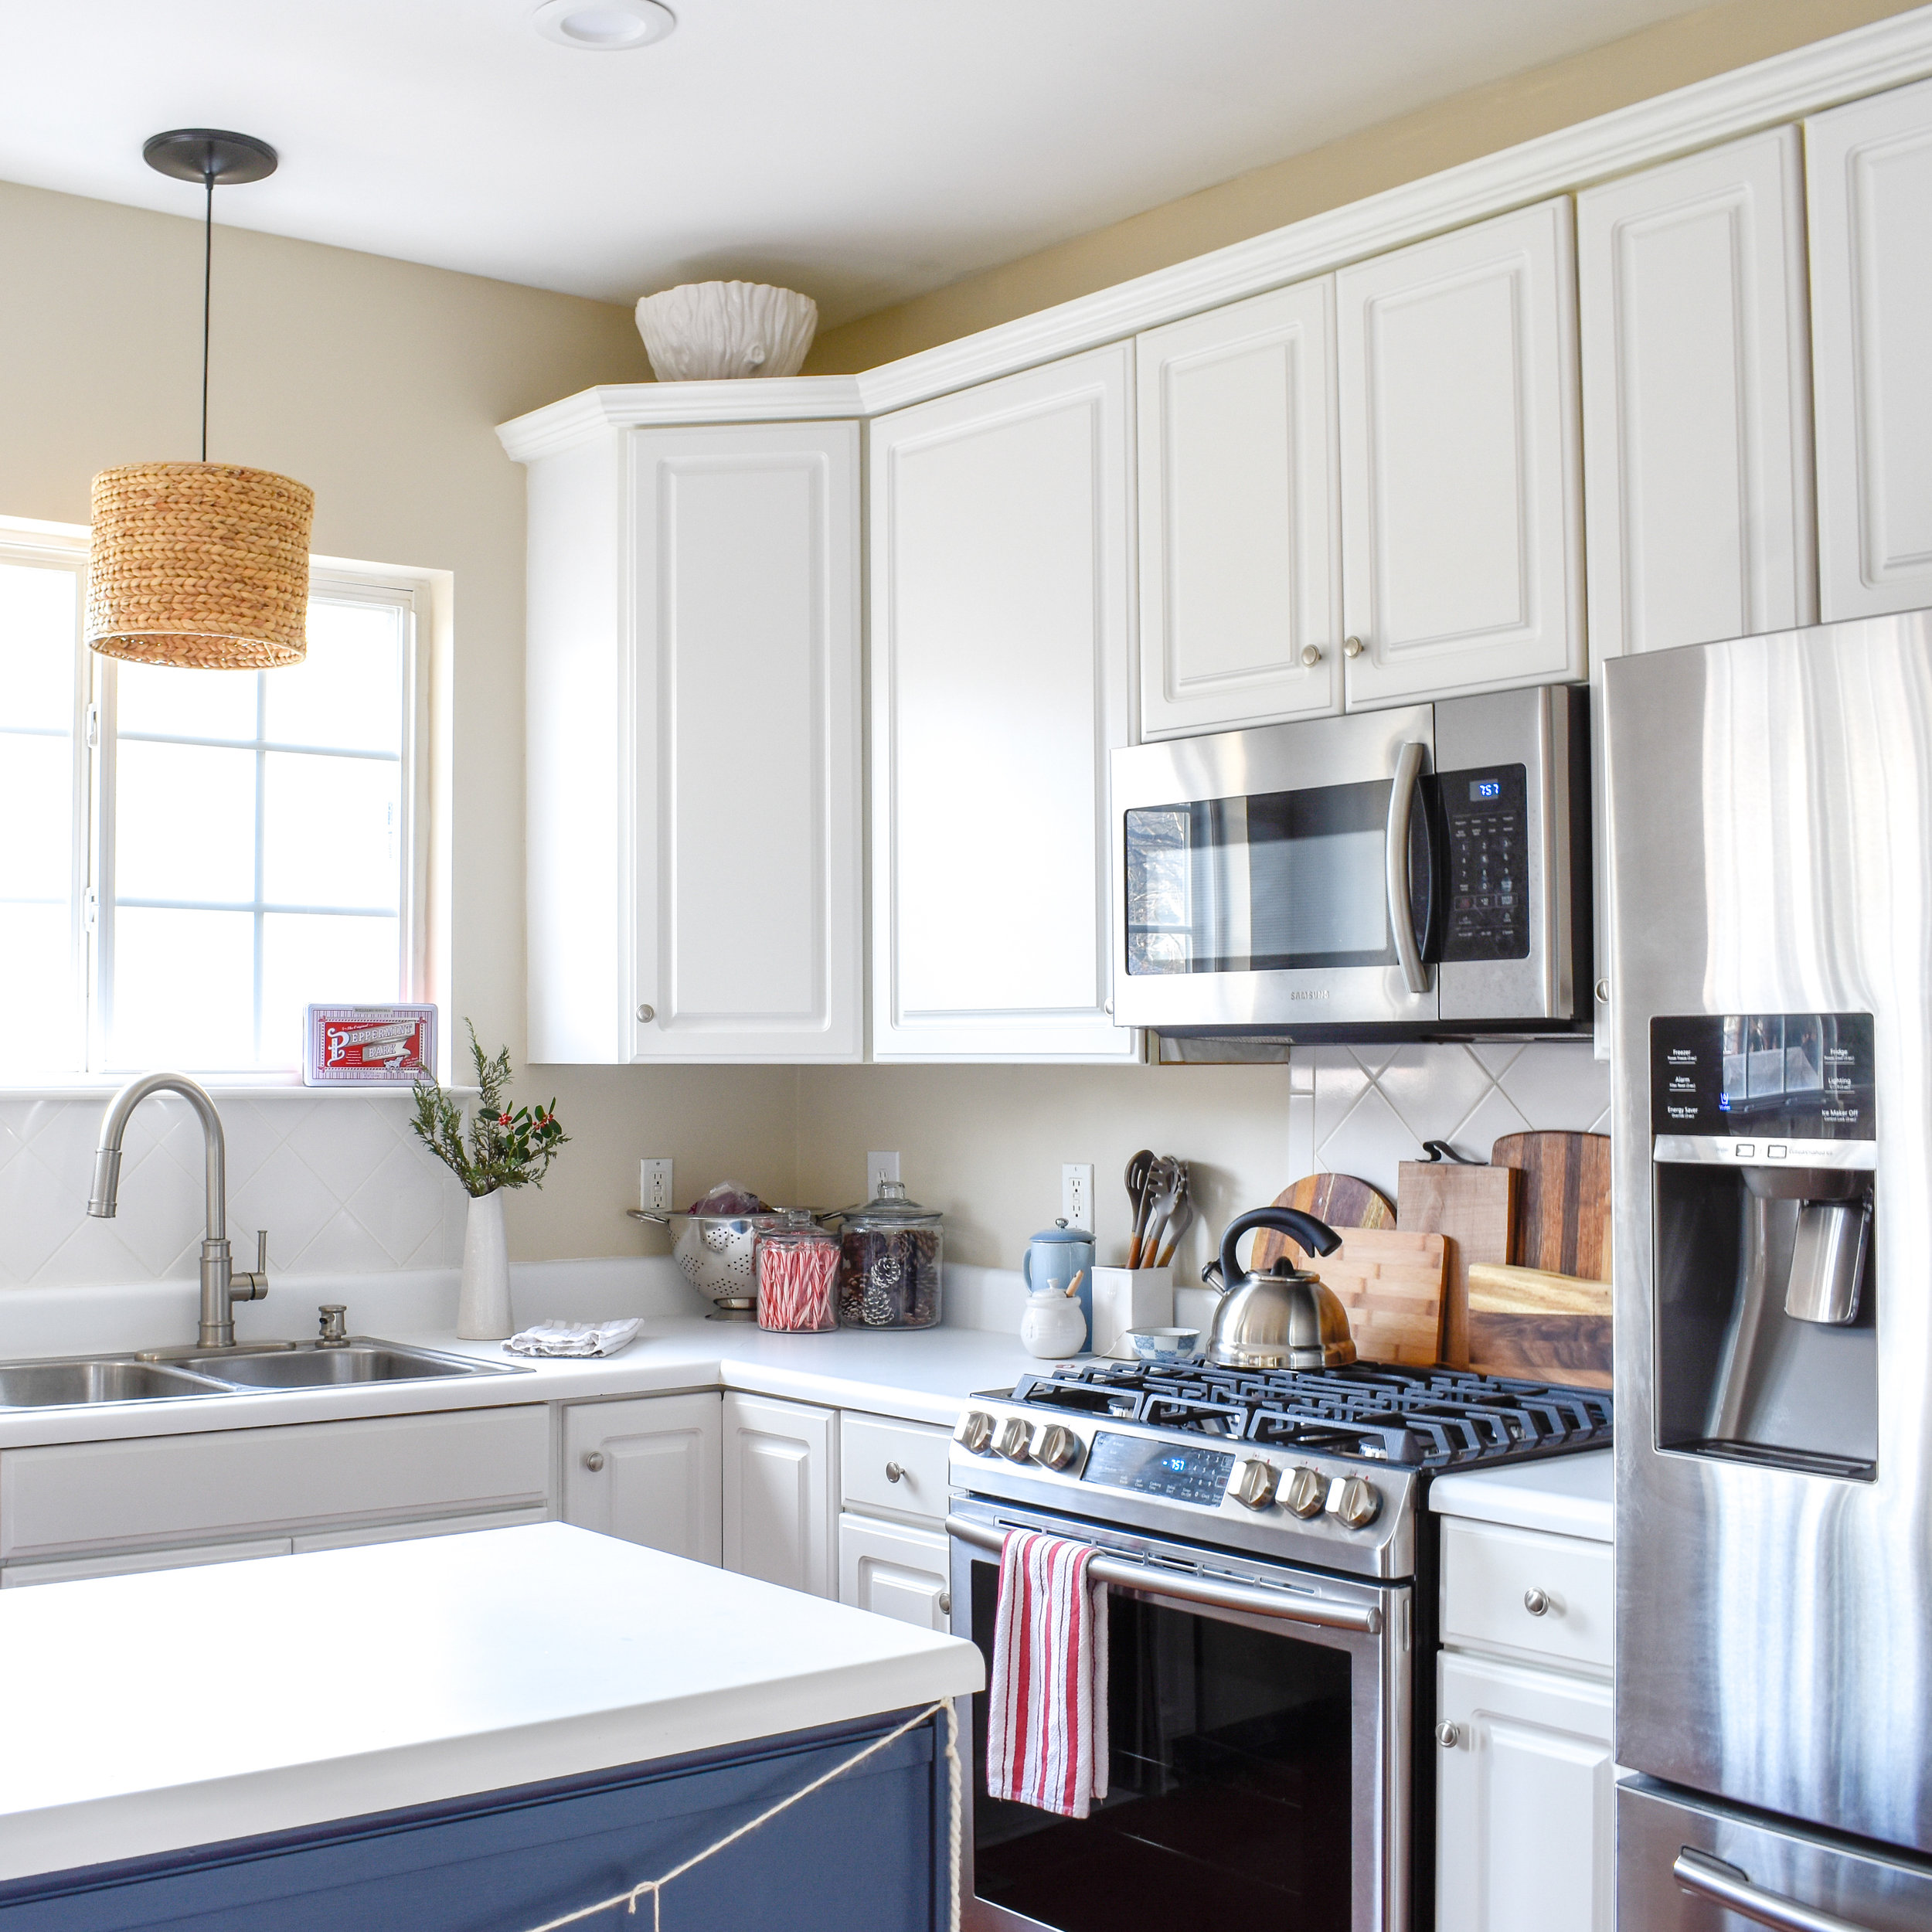 5 Upgrades Real Estate Buyers Expect To See In 2019 | Stone Countertops + Tile - Gone are the days of granite and stainless steel. The options are broader now, but you should still expect to shell out some cash to have stone countertops installed before you sell.